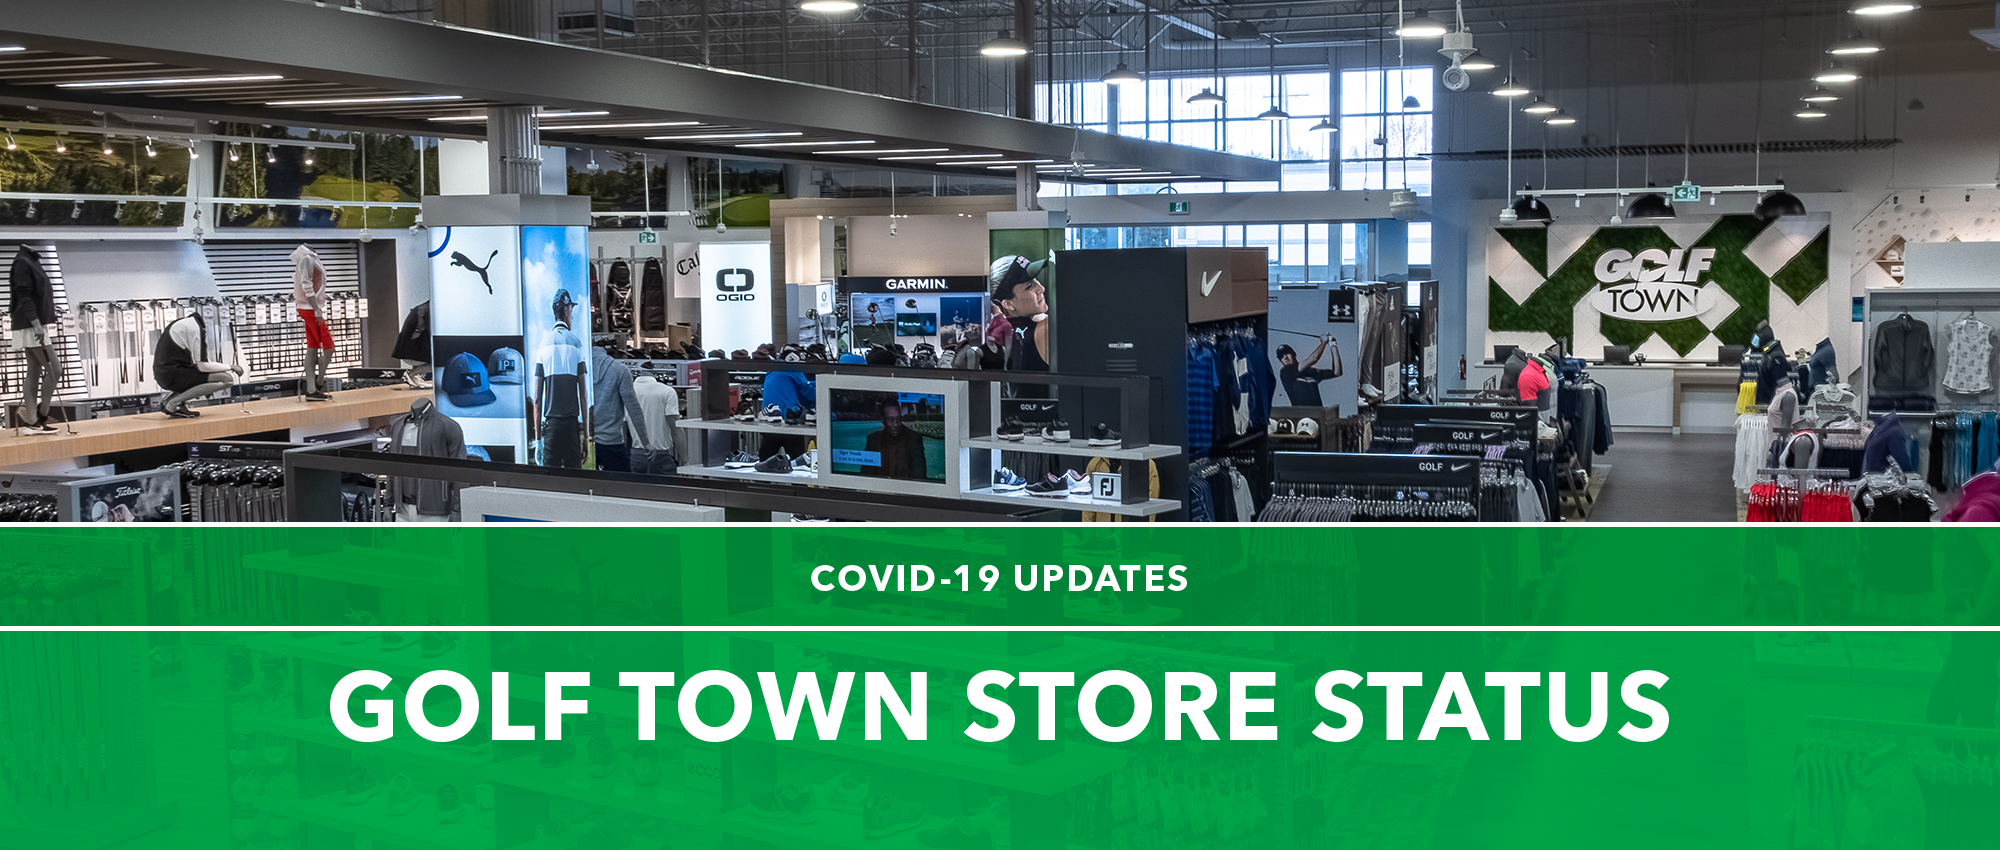 Golf Town Stores Open